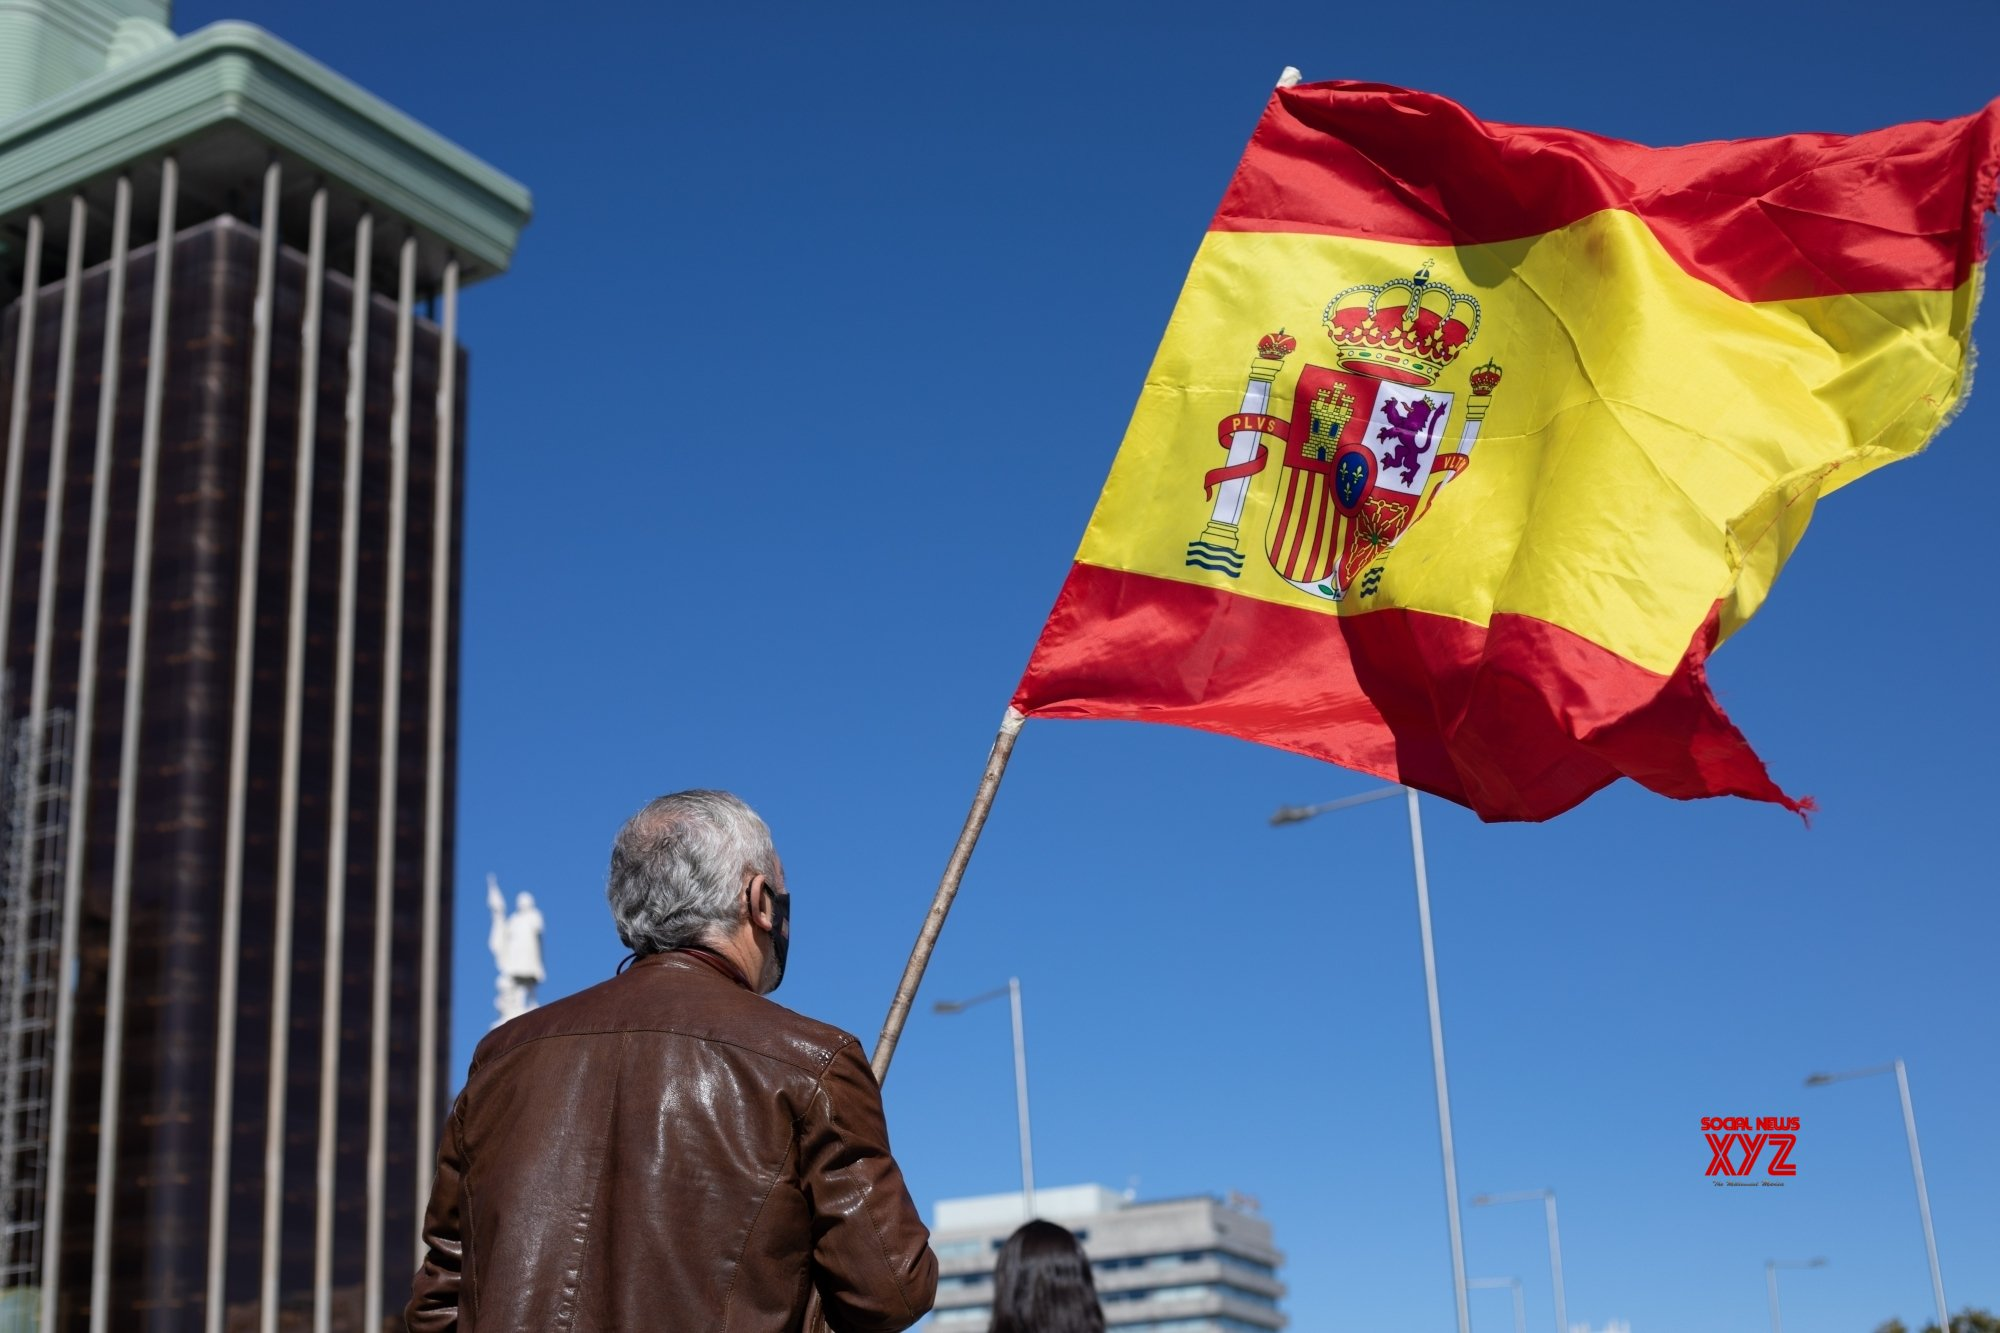 Right-wing populist party eyes Madrid regional govt role